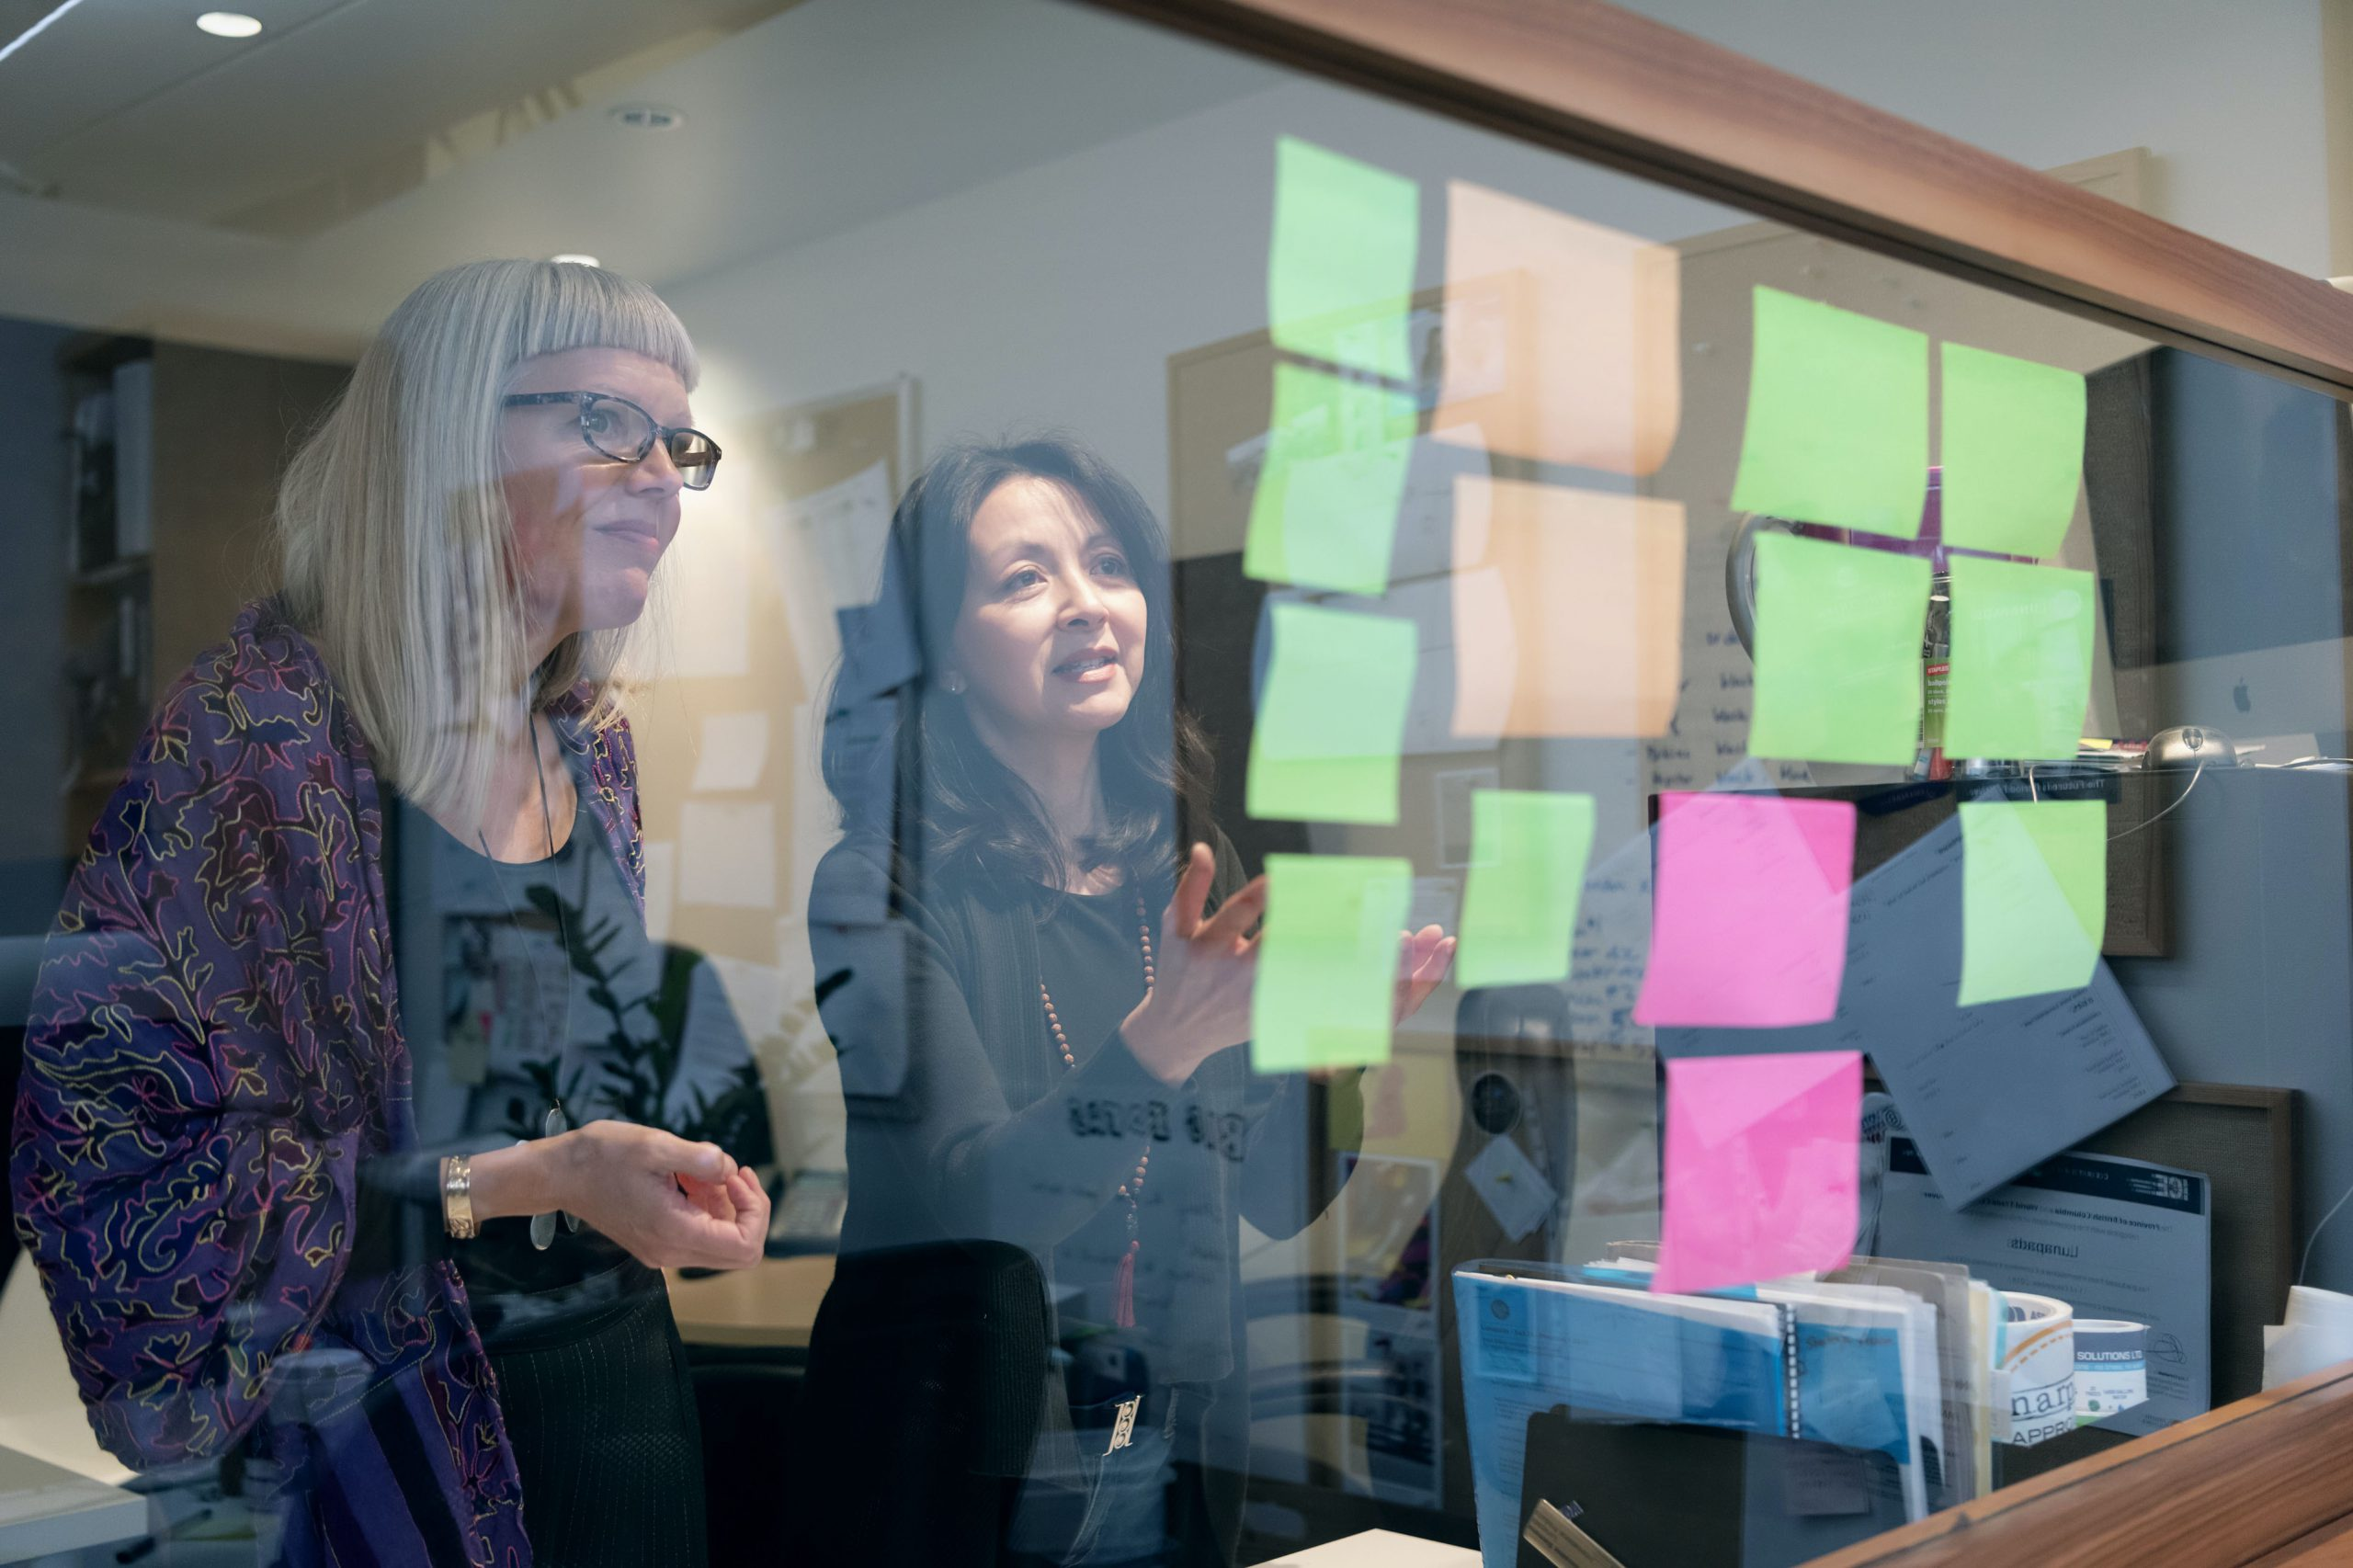 Madeleine Shaw and Suzanne Siemens looking at post-its